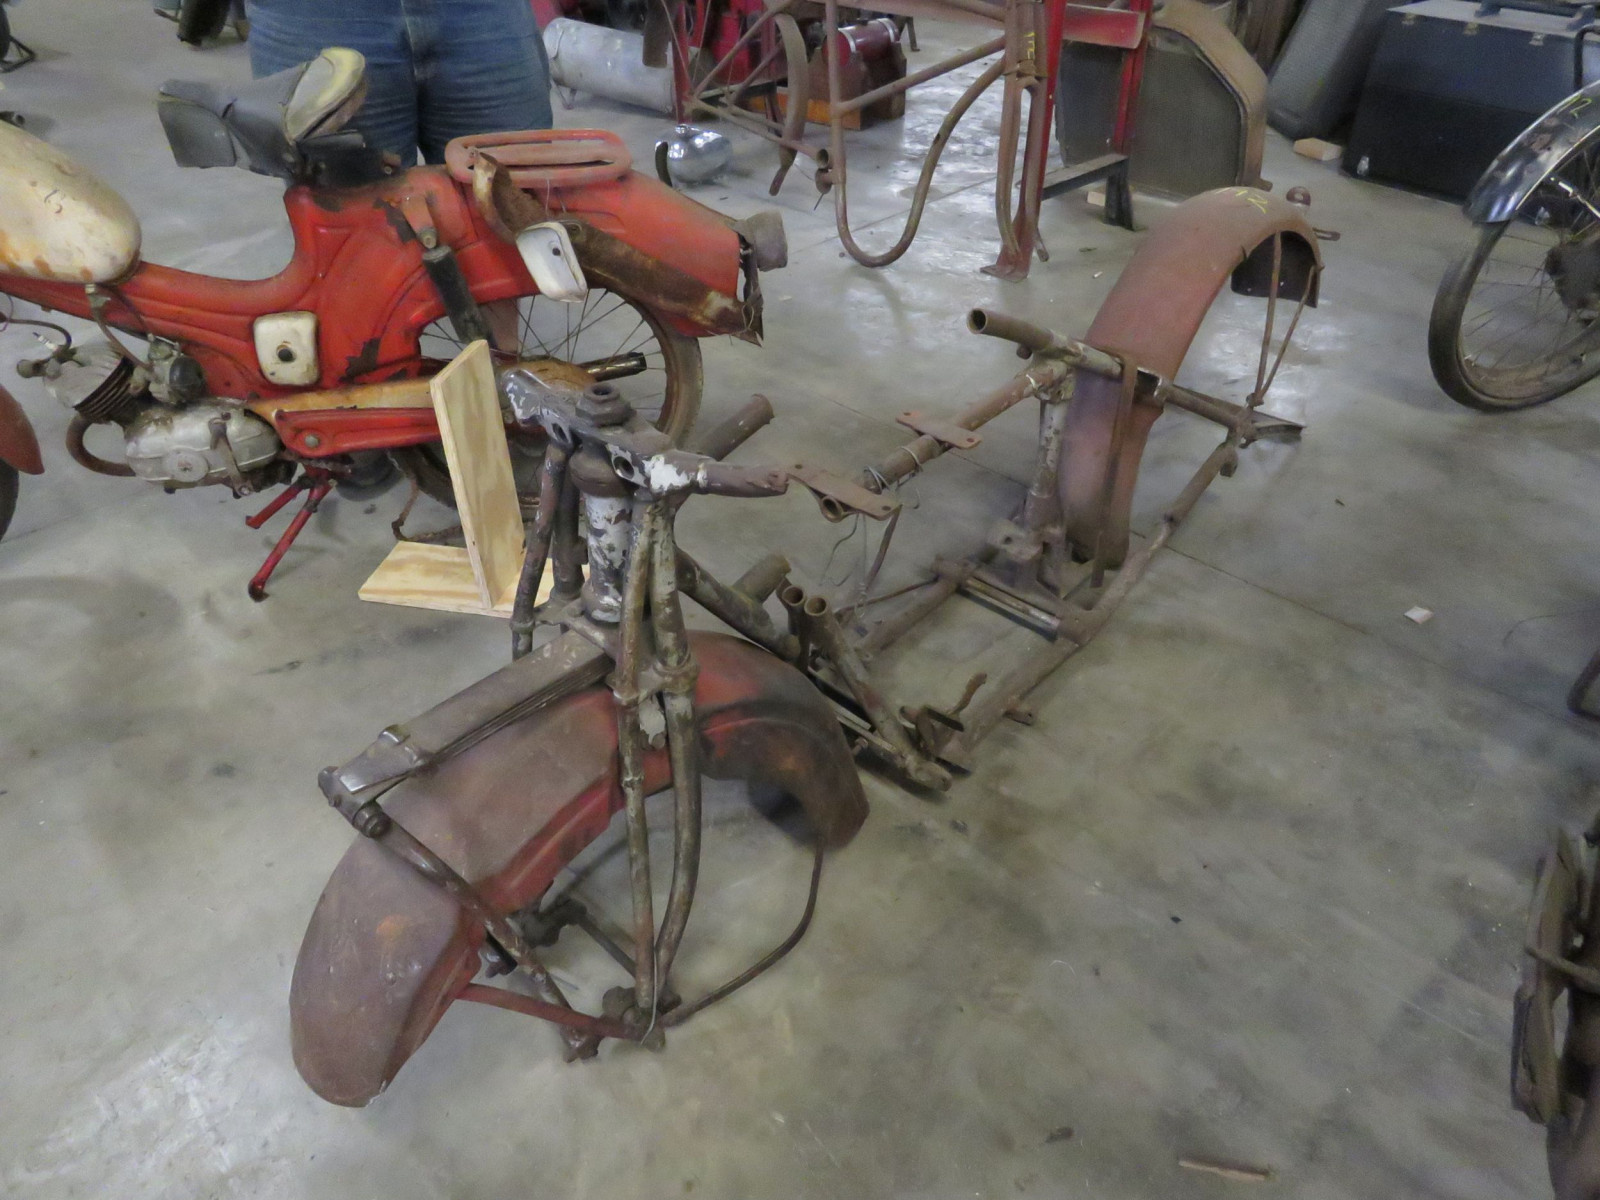 Vintage Indian Motorcycle Frame Project - Image 2